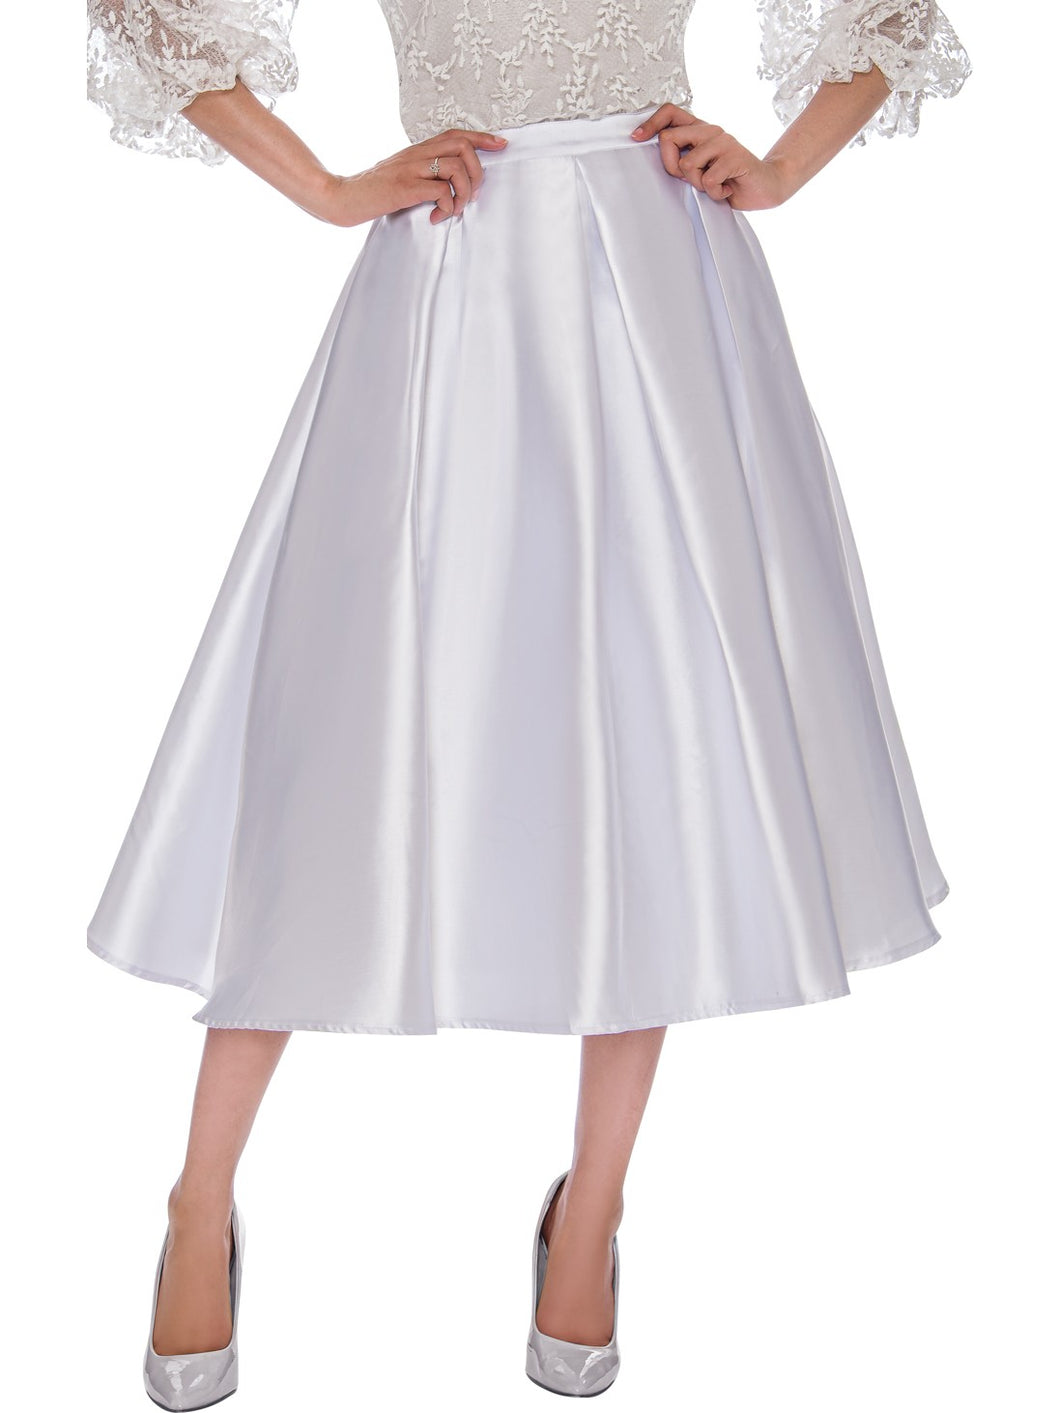 Rose Collection RC585 White Skirt – Church, Wedding, Holiday, Special Occasion